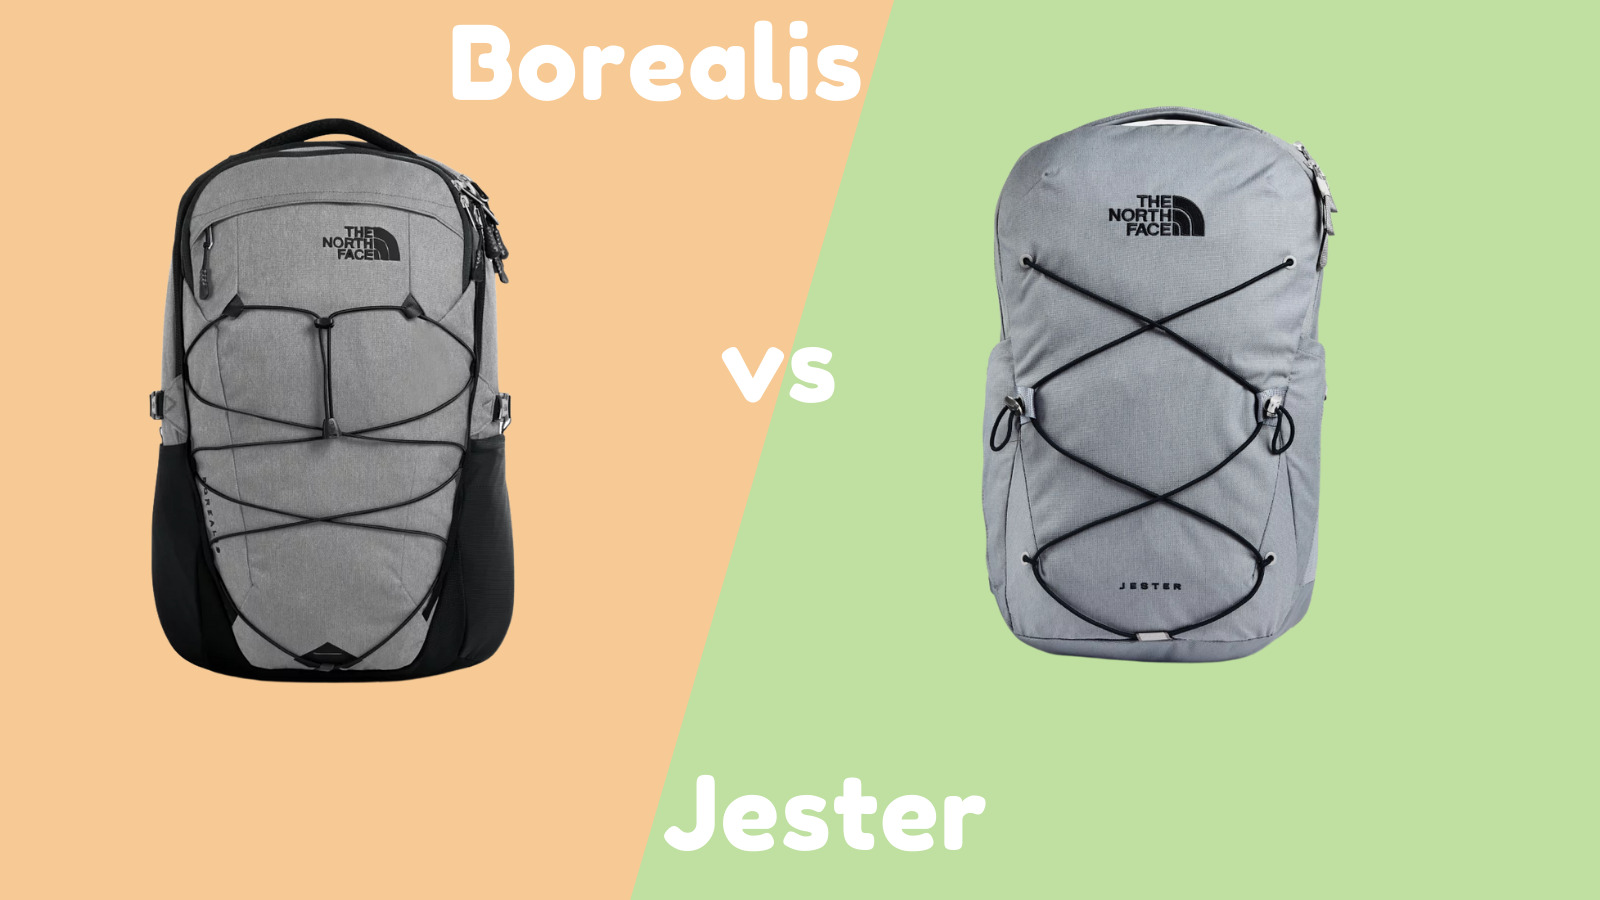 The North Face Borealis vs Jester: The North Face Borealis and Jester backpack front view